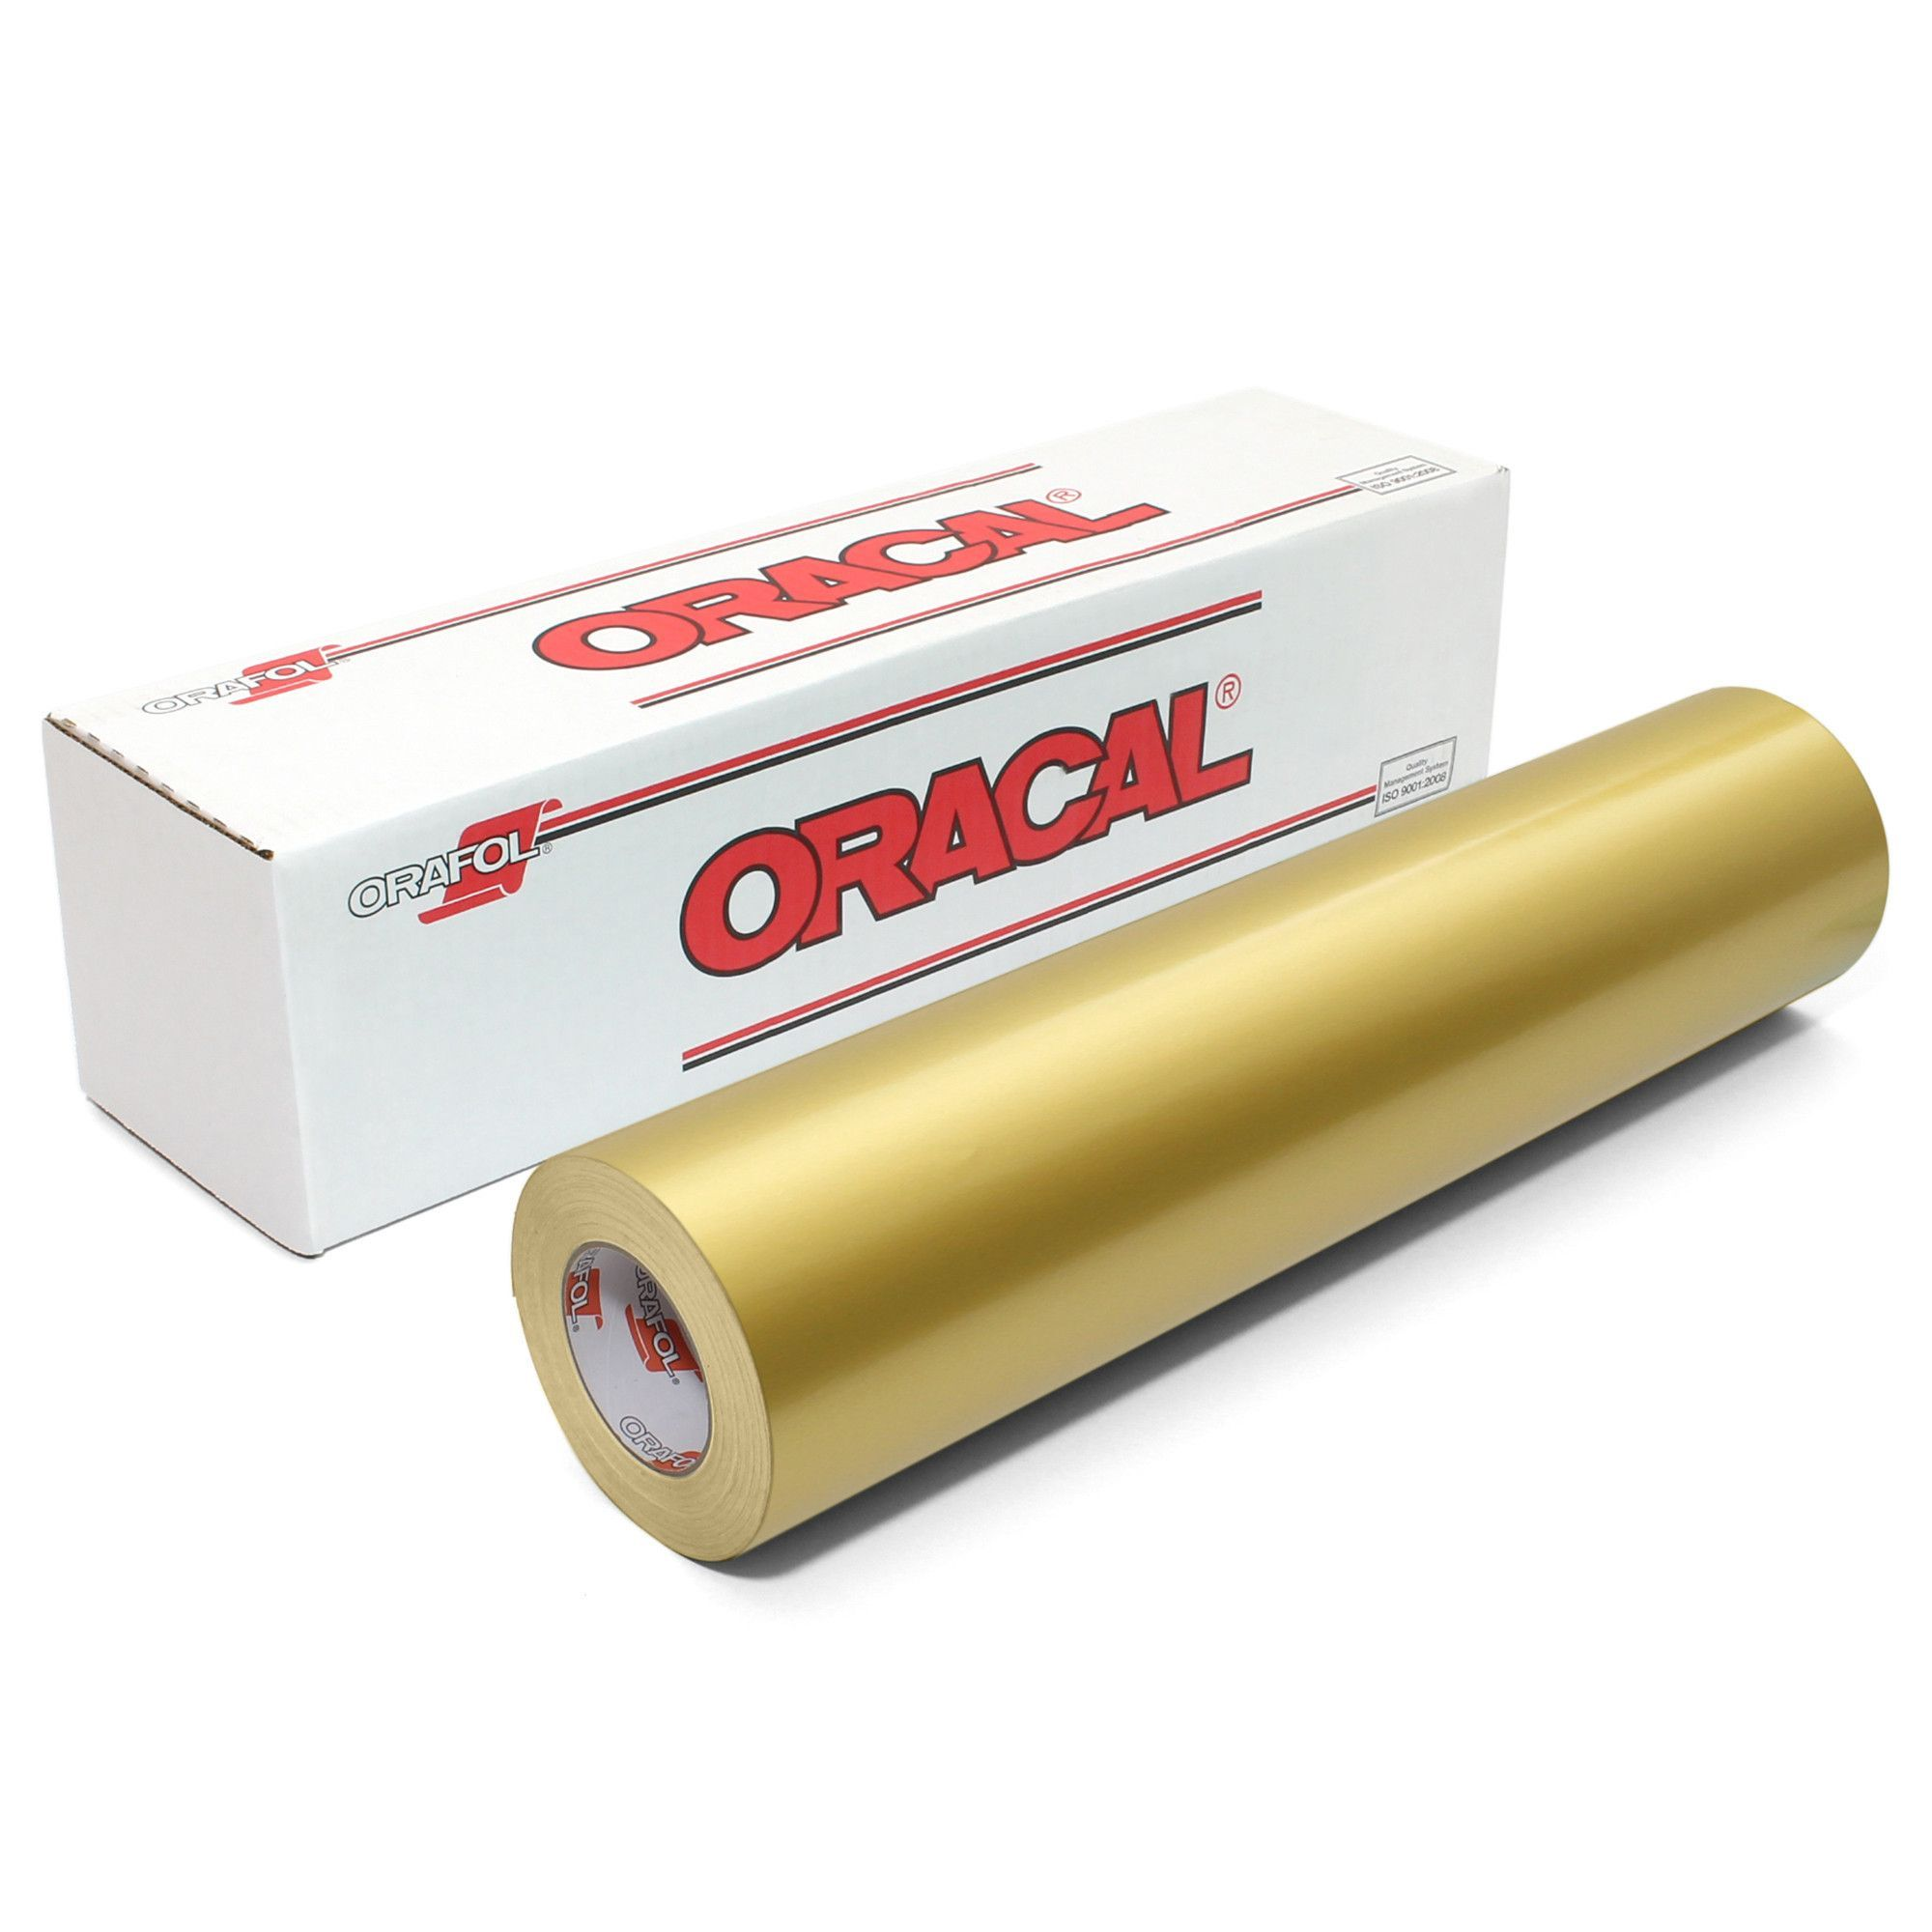 Oracal 651 Glossy 12 X 6 Ft Vinyl Rolls 61 Colors Vinyl Rolls Oracal Adhesive Vinyl Sheets